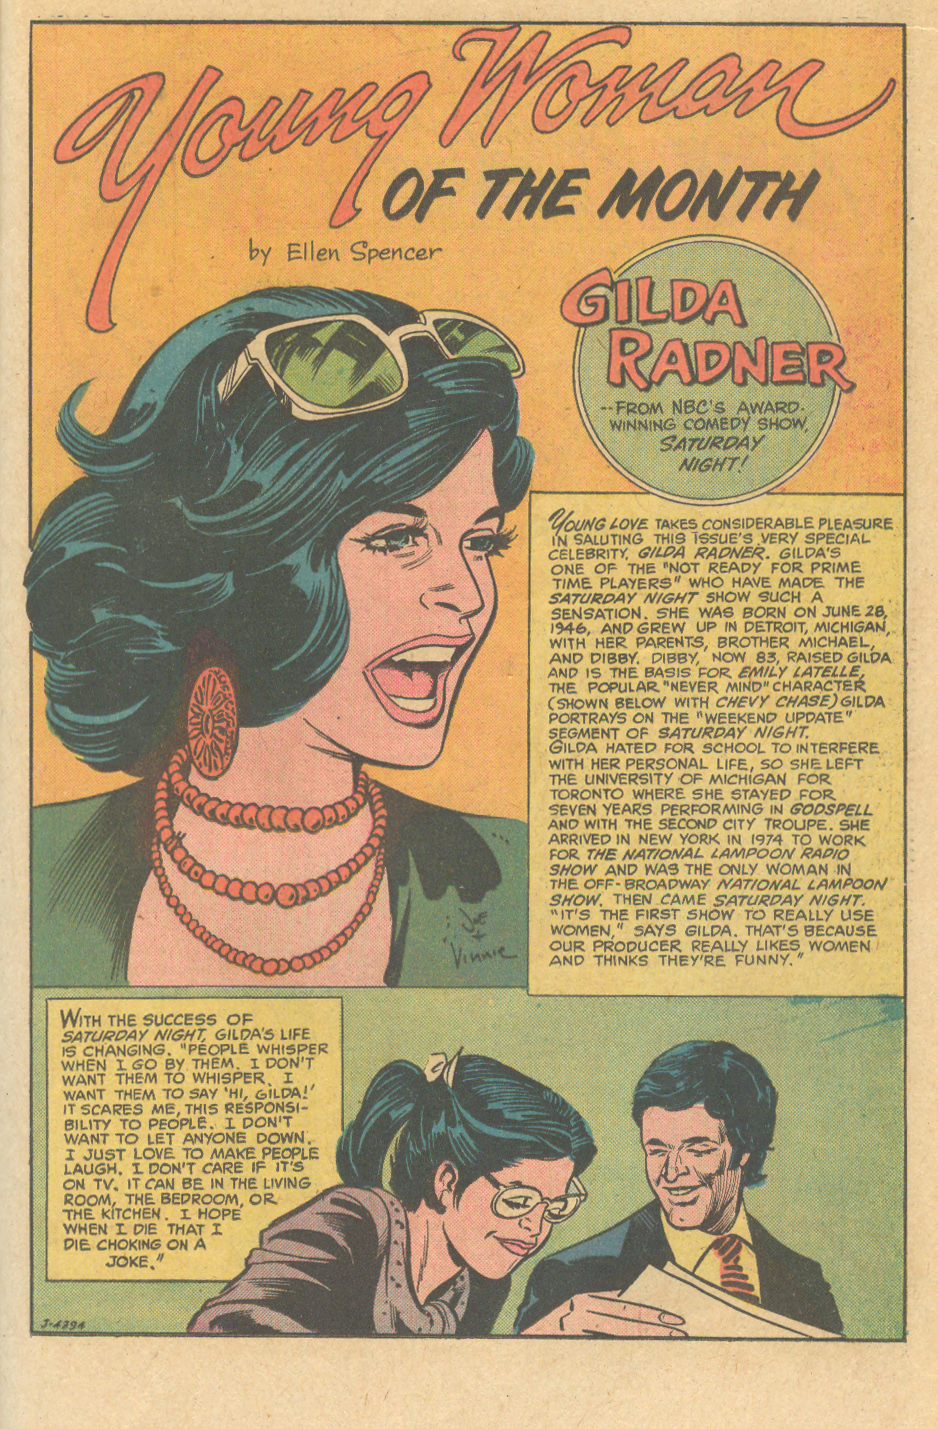 Scripted by Ellen Spencer Pencils: Joe Orlando, Inks: Vince Colletta